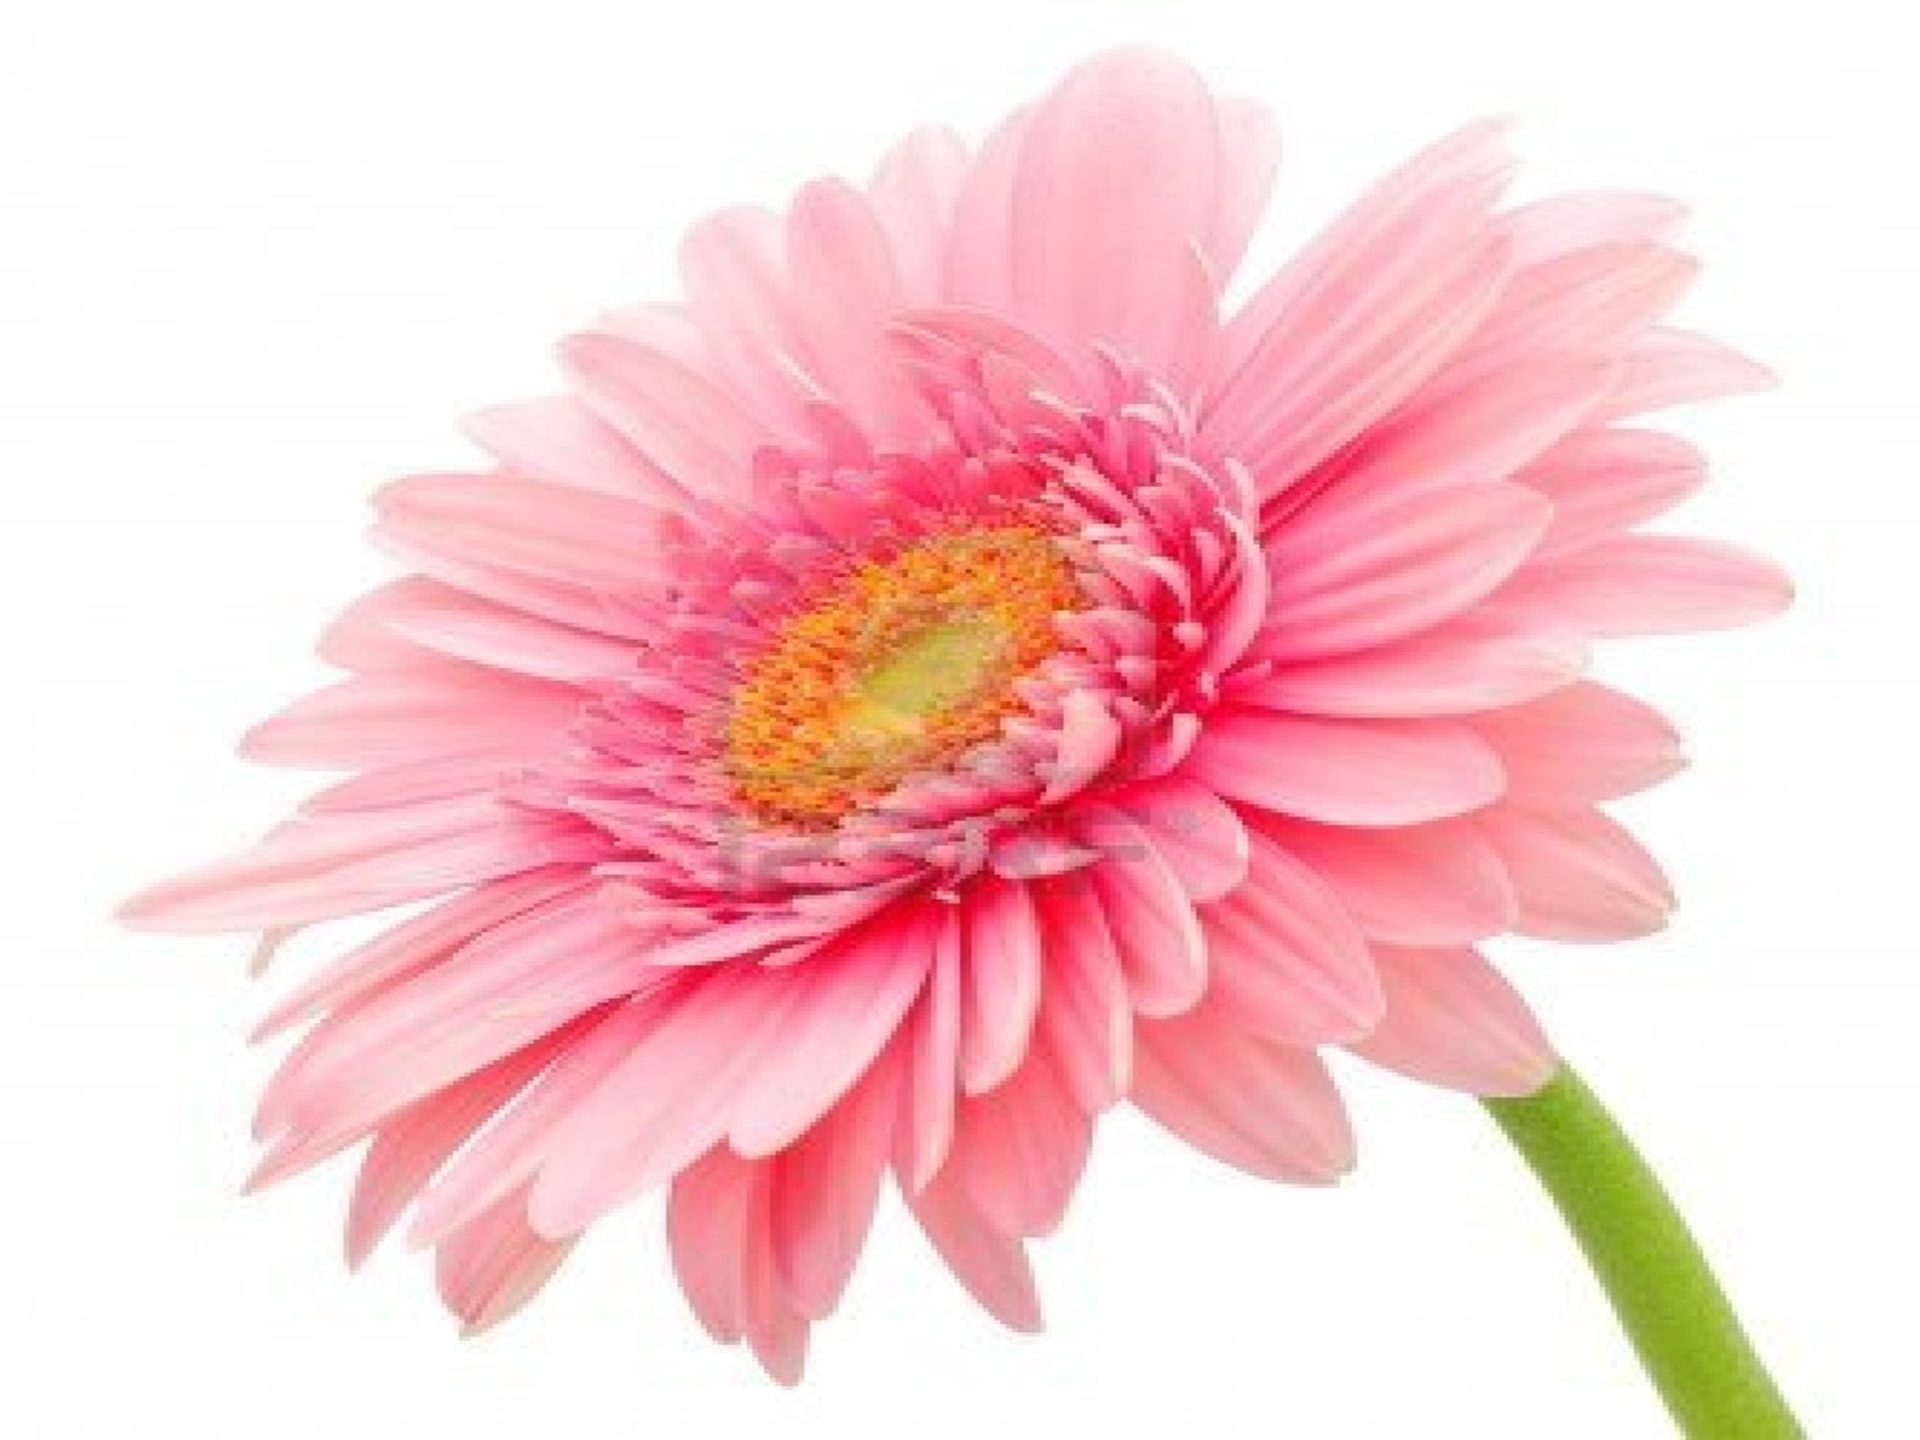 Pretty Wallpapers Rose Quotes Gerbera Daisy Flower Wallpaper 2 Wallpapers13 Com